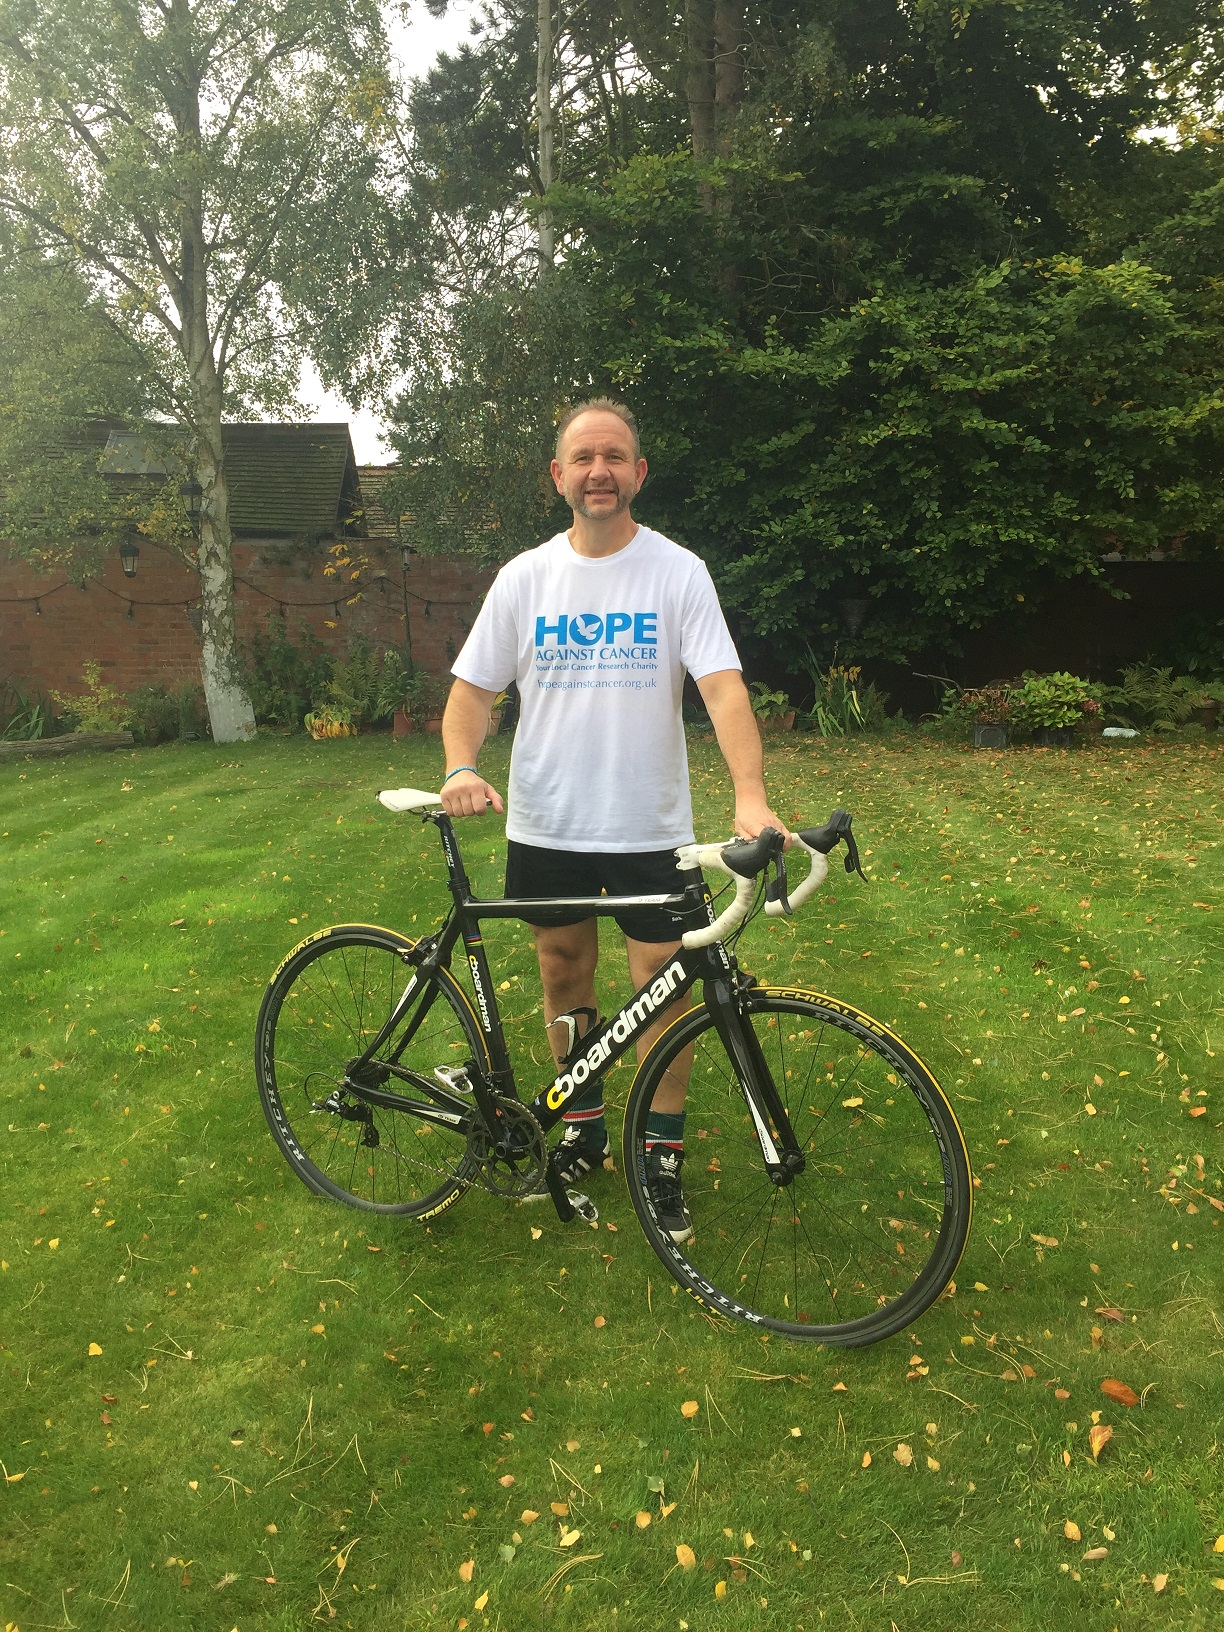 Cancer survivor and charity fundraiser Mark Mercala takes on sponsored 120 mile bike ride for Hope Against Cancer